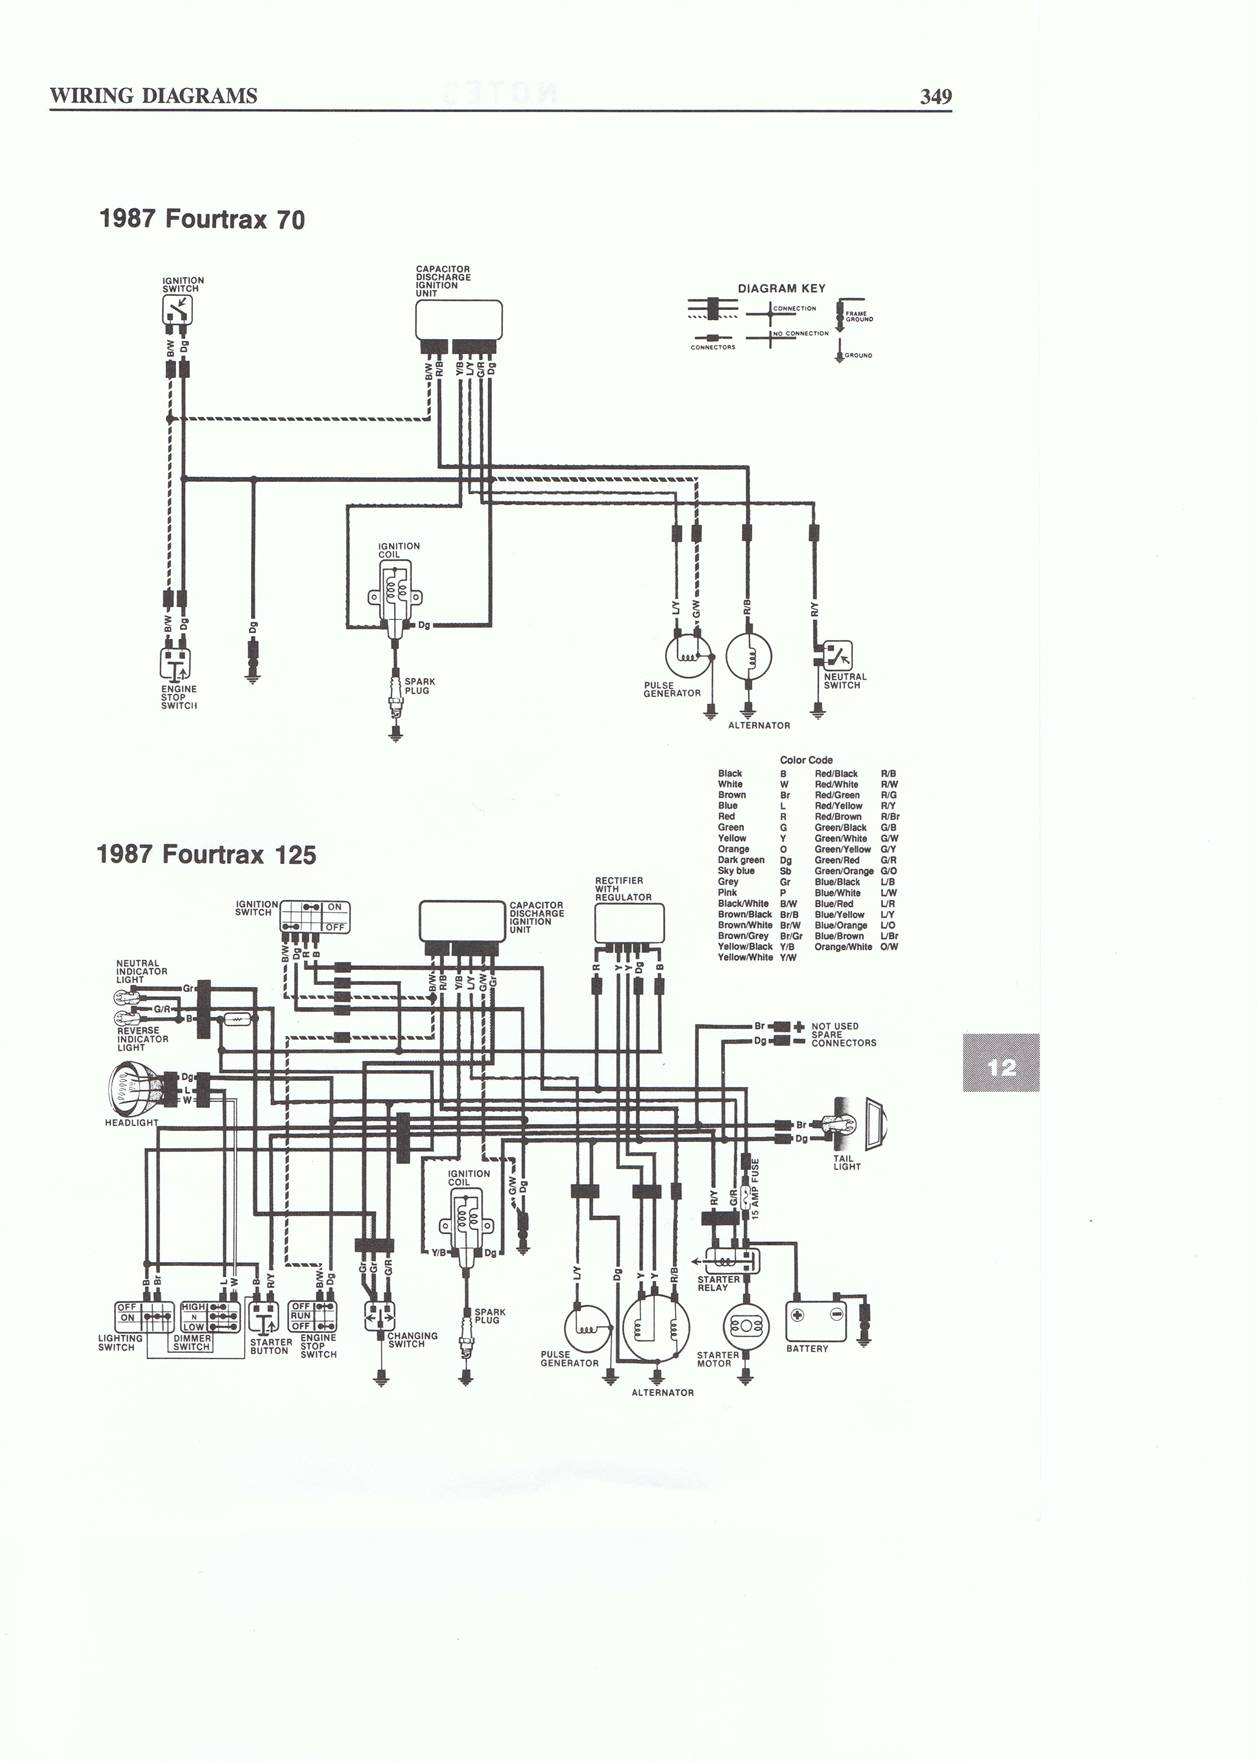 gy6 engine wiring diagram?t=1398725710 gy6 engine wiring diagram  at bayanpartner.co